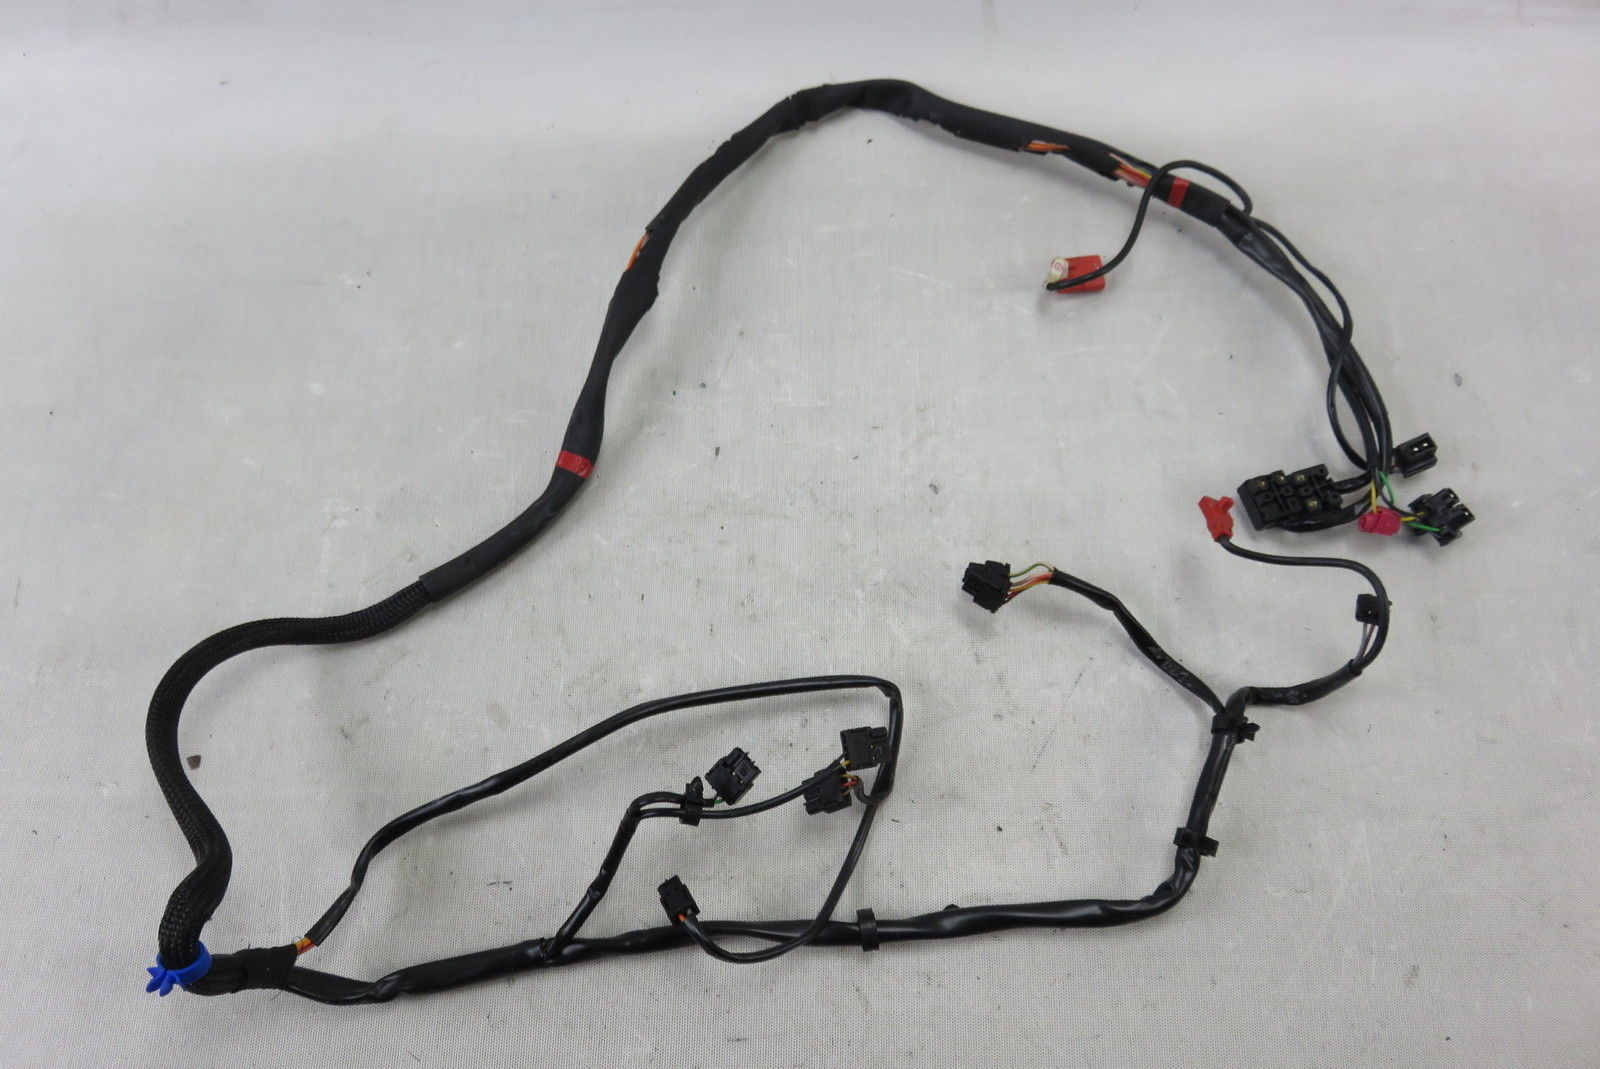 Mercedes Seat Wiring Electrical Diagrams Harnesses 95 Sl500 R129 Right Harness 1295406810 S Auto 2014 Benz S500 Rear Seating